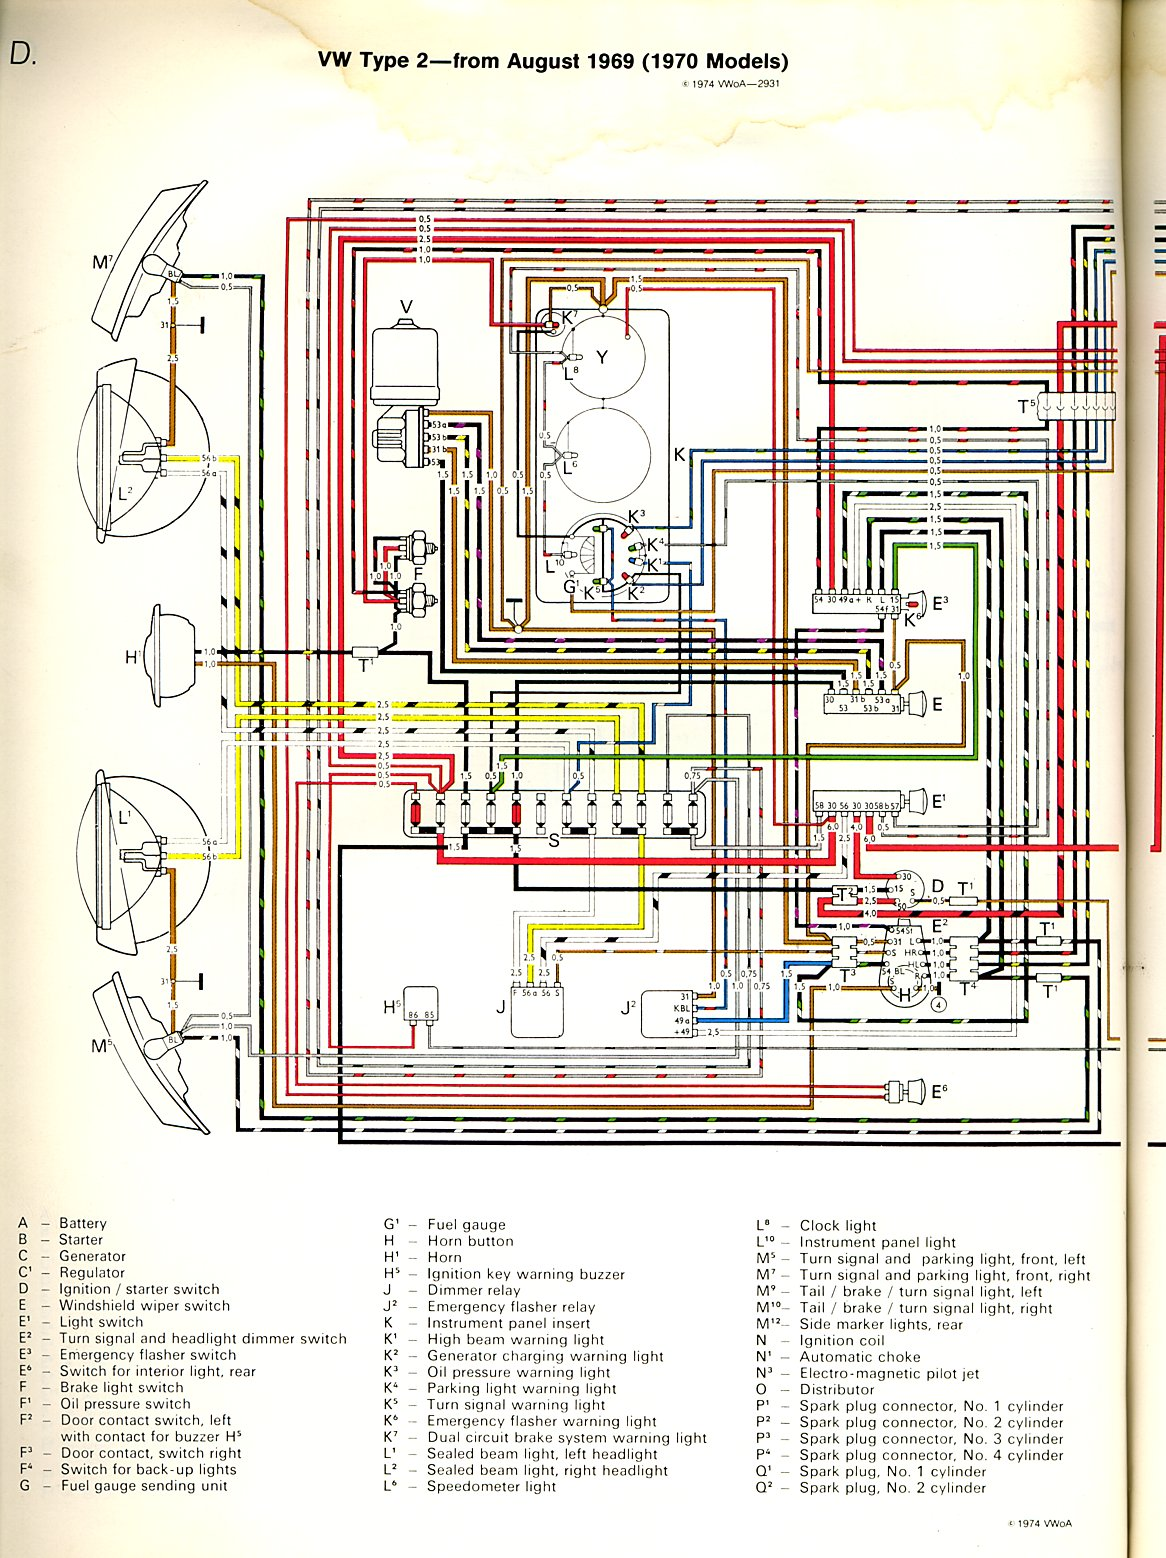 1968 Chevy Truck Wiring Harness Learn Diagram Effectively Images Gallery Thesamba Com Type 2 Diagrams